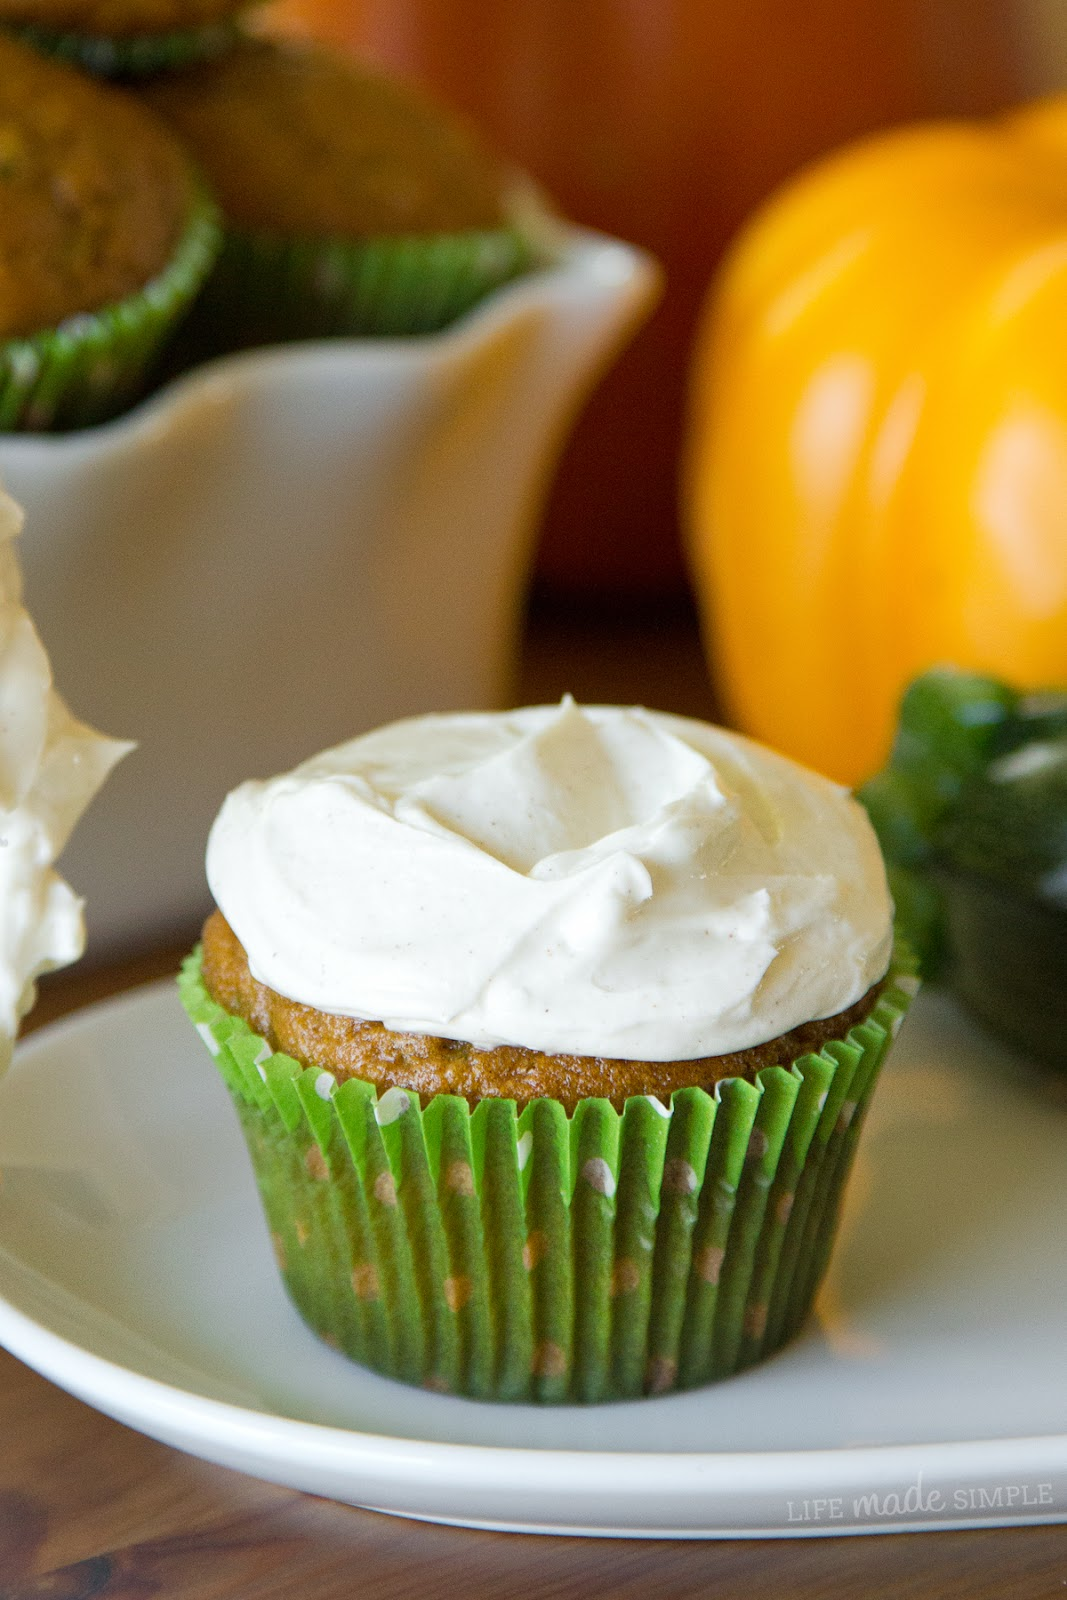 Life Made Simple: Zucchini Carrot Pumpkin Muffins